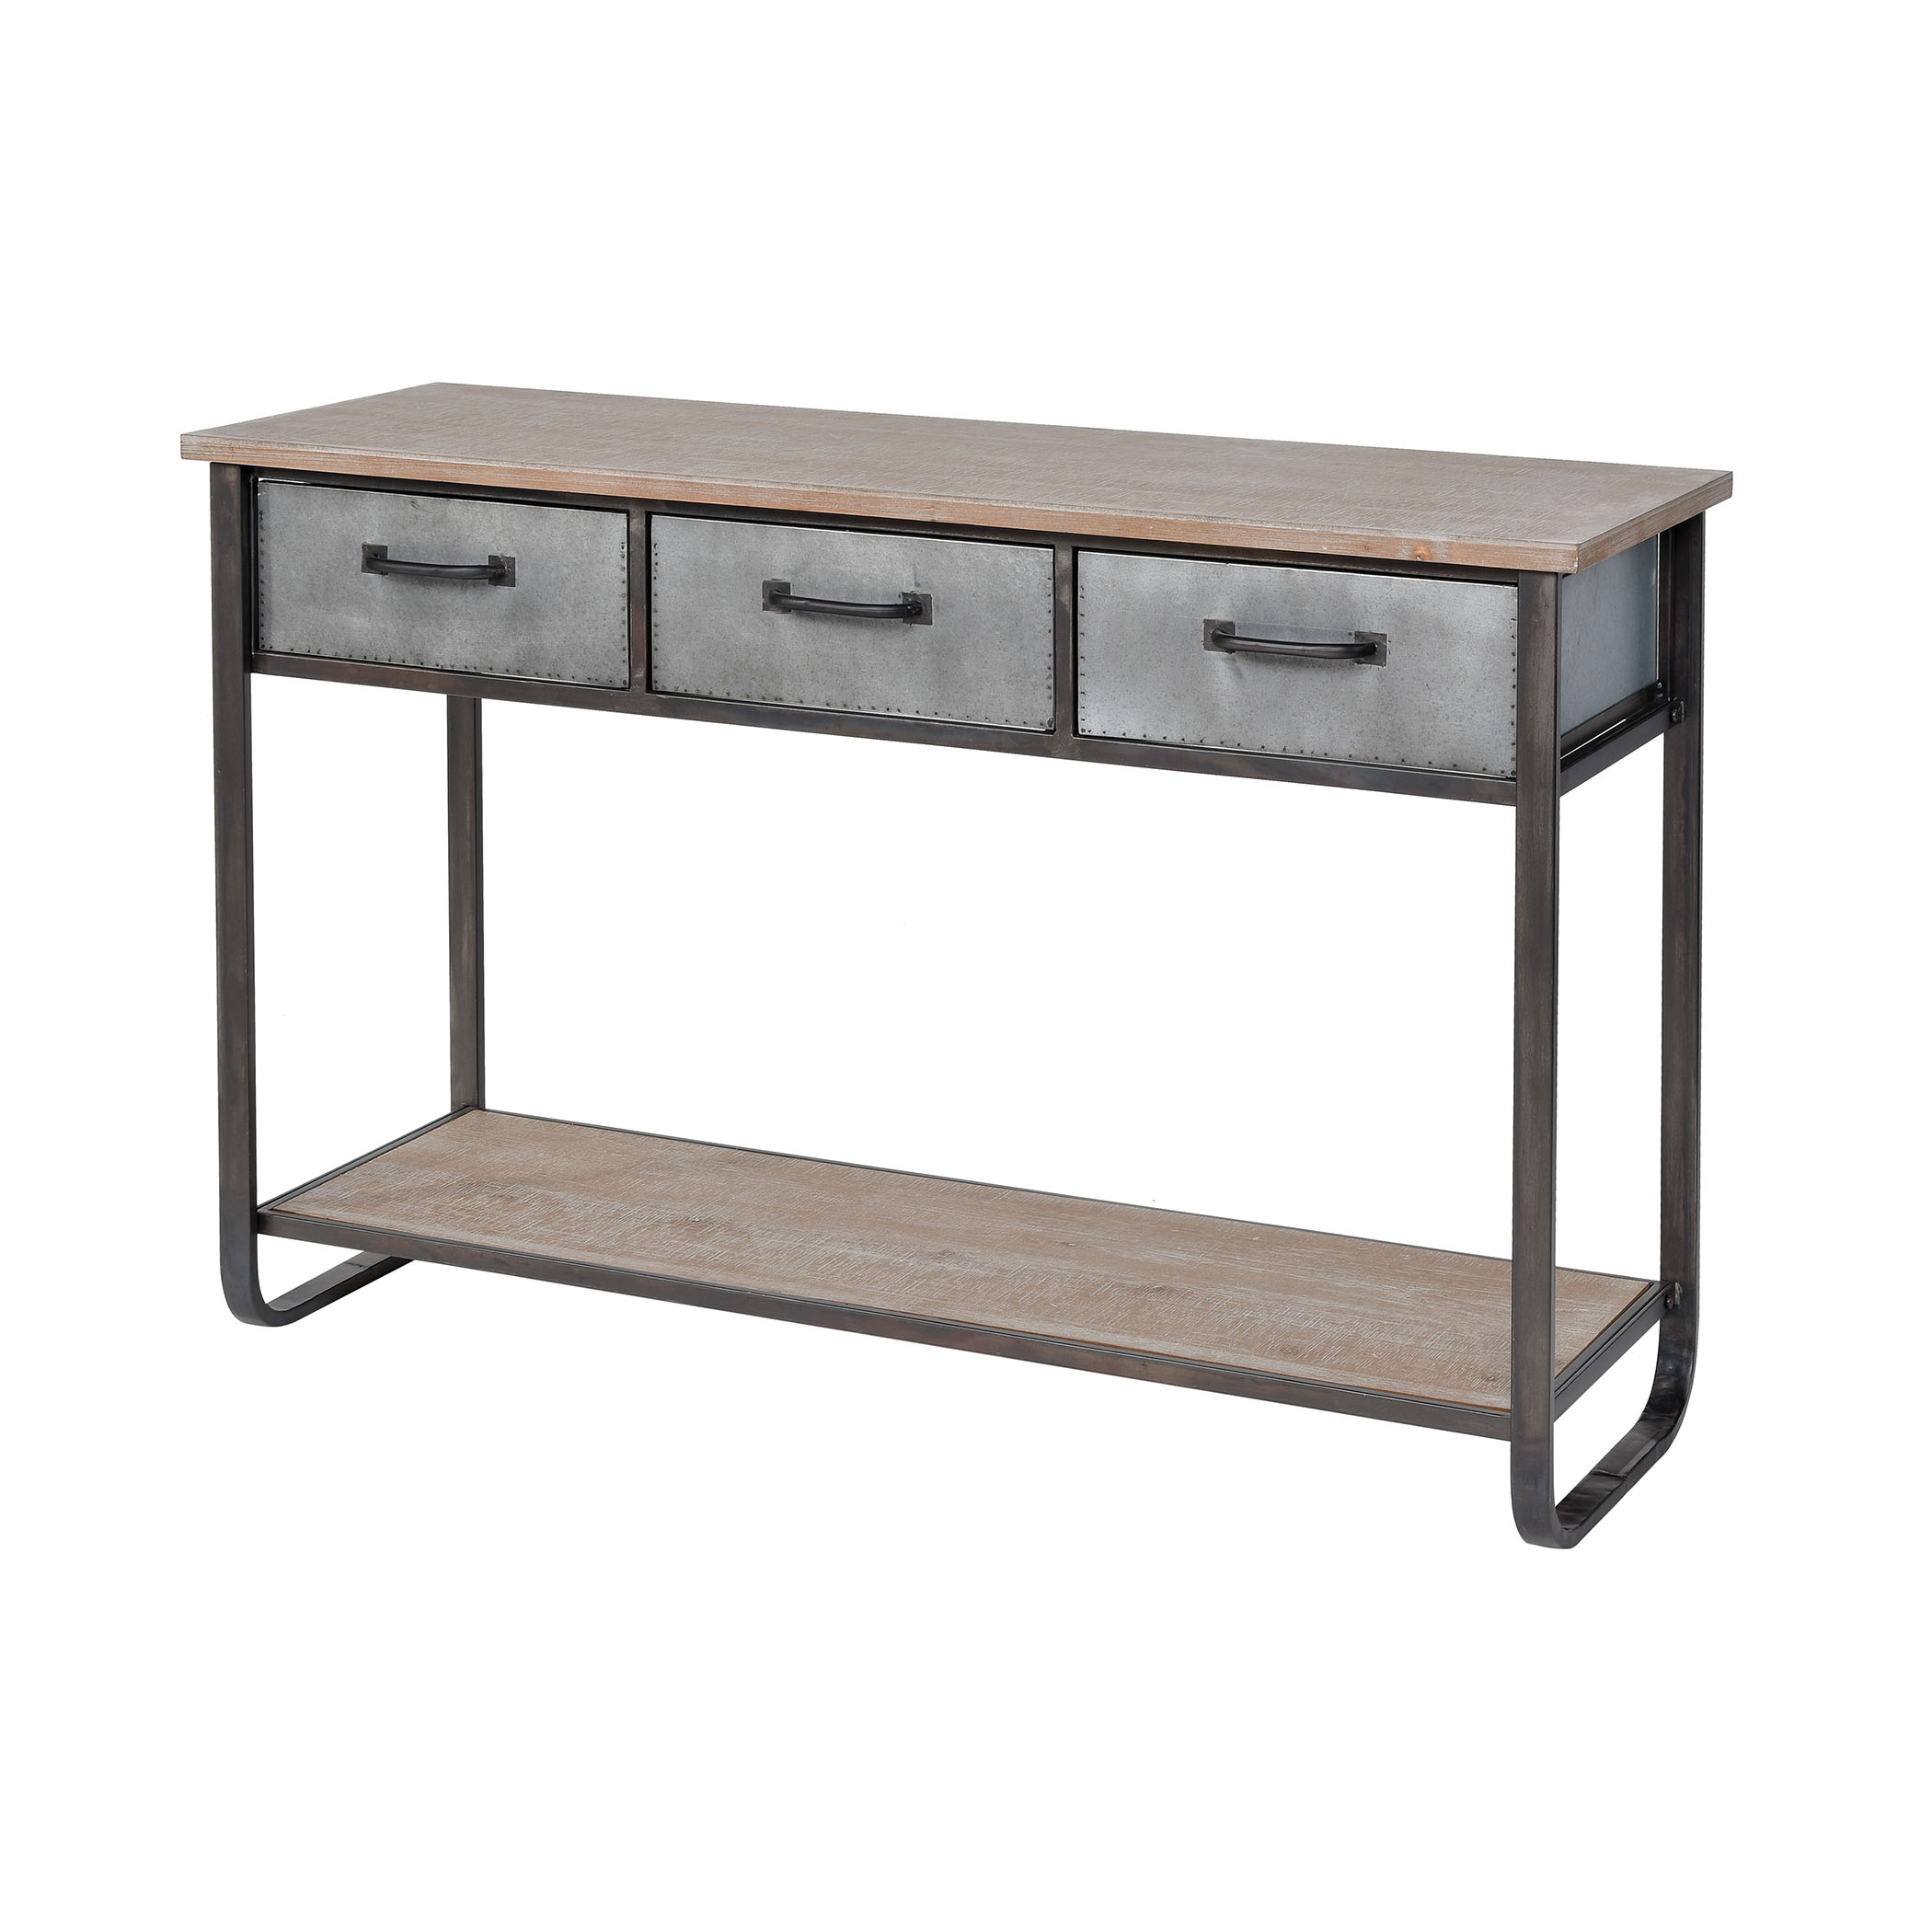 Whitepark Bay Console in Natural Fir Wood And Galvanized Steel Medium 3138-484 | ELK Home